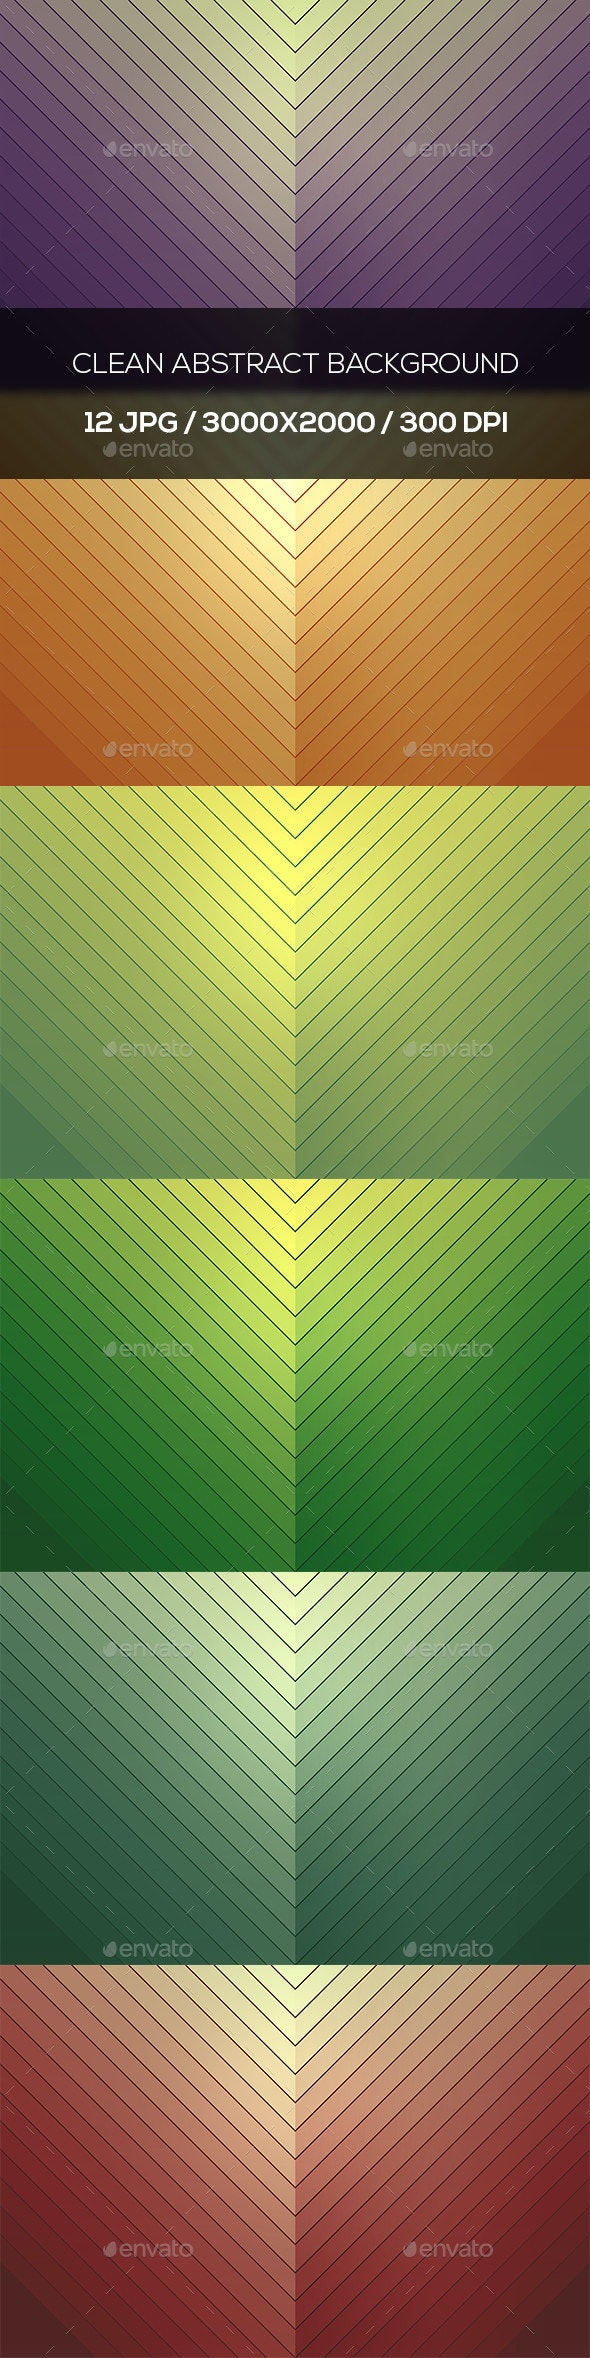 Clean Abstract Background - Backgrounds Graphics